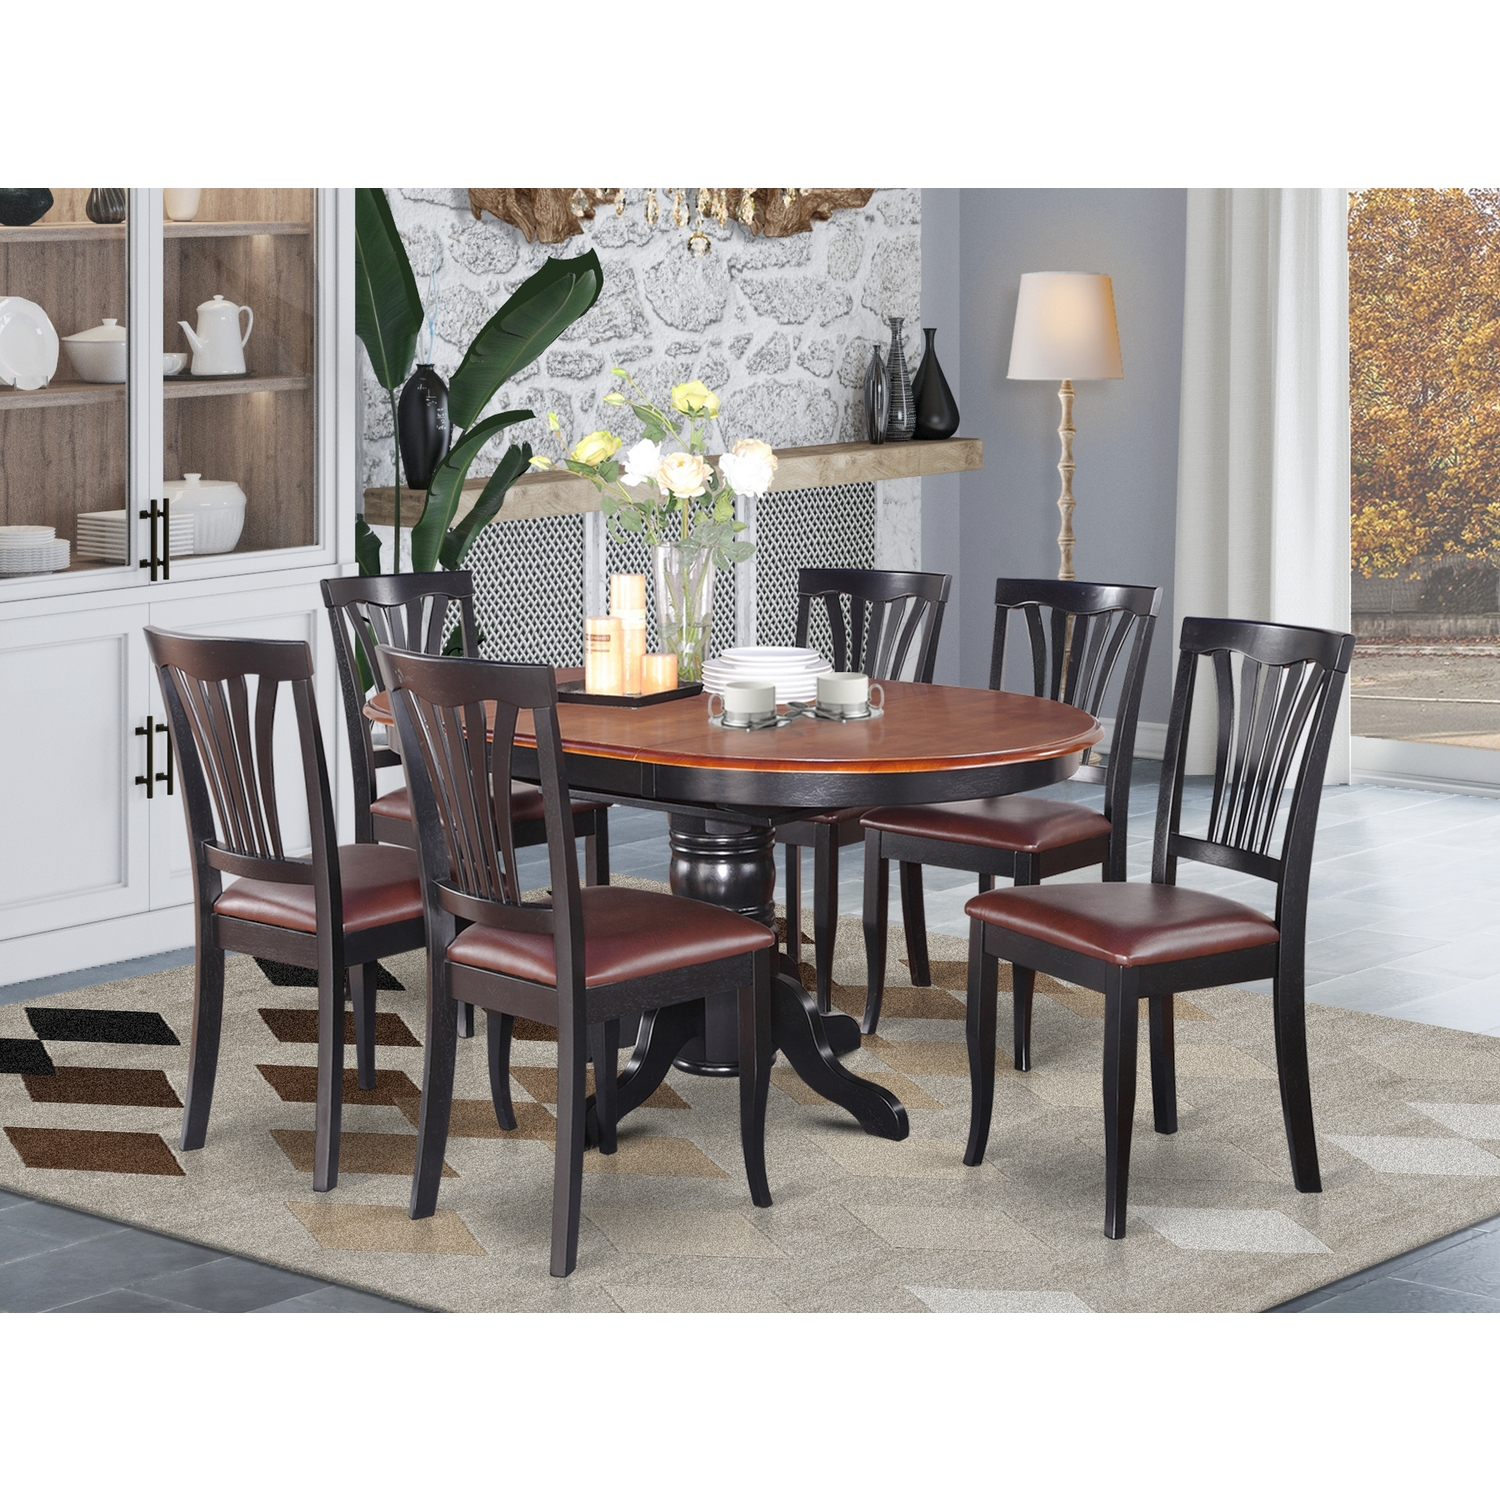 Dining Room Set Oval Table With Leaf, Oval Dining Room Set